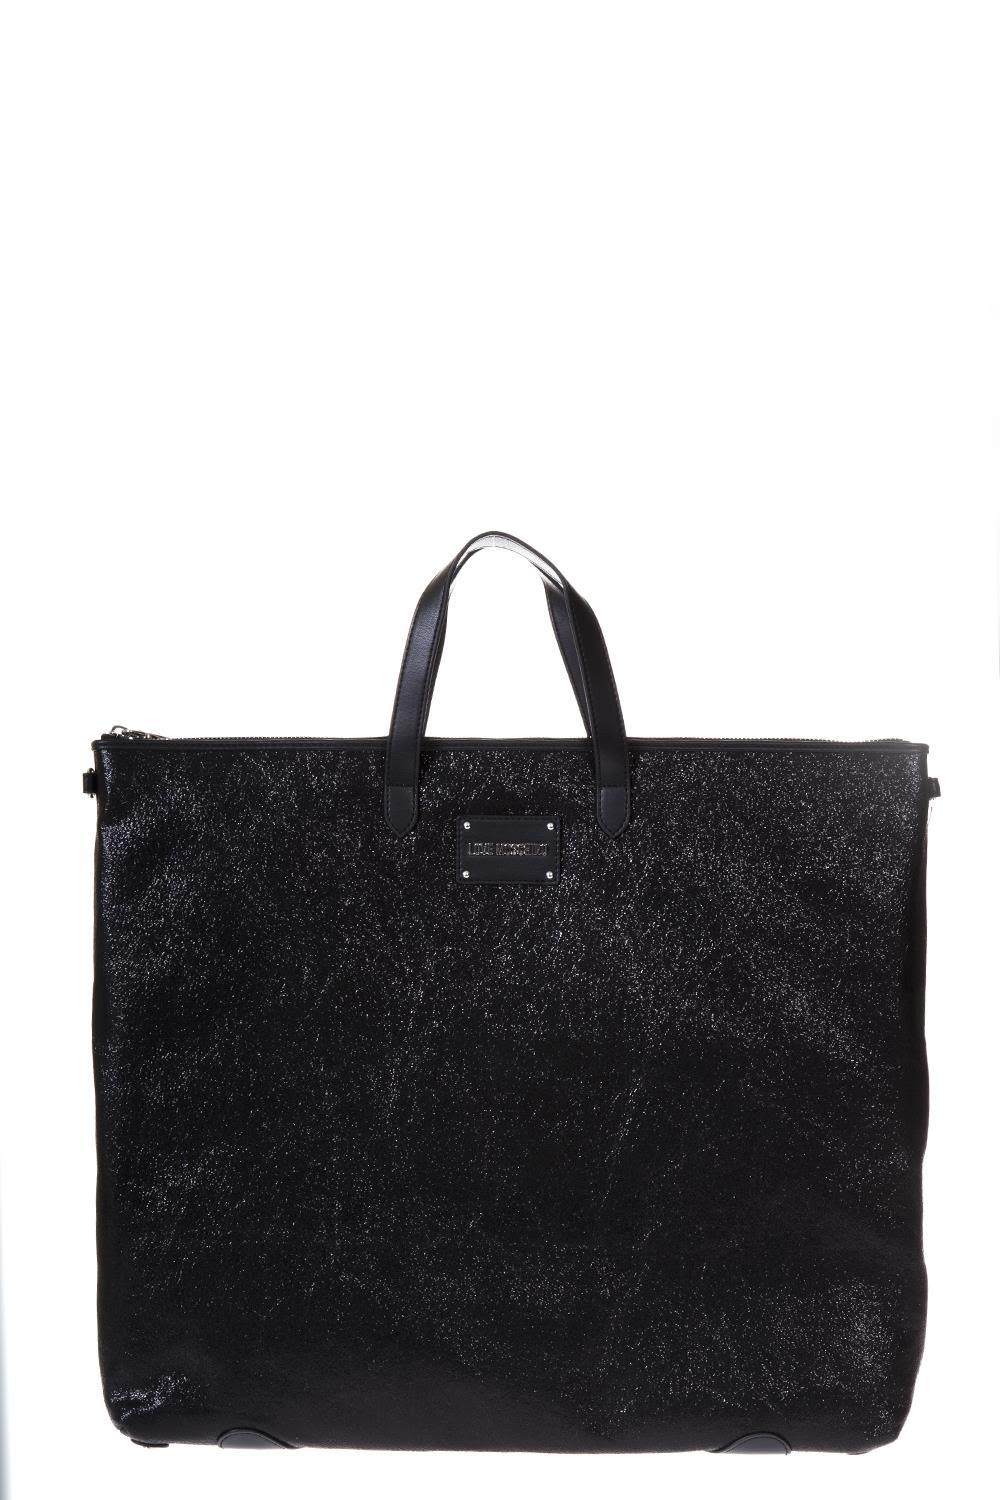 Love Moschino Black Reversible Eco Leather Bag